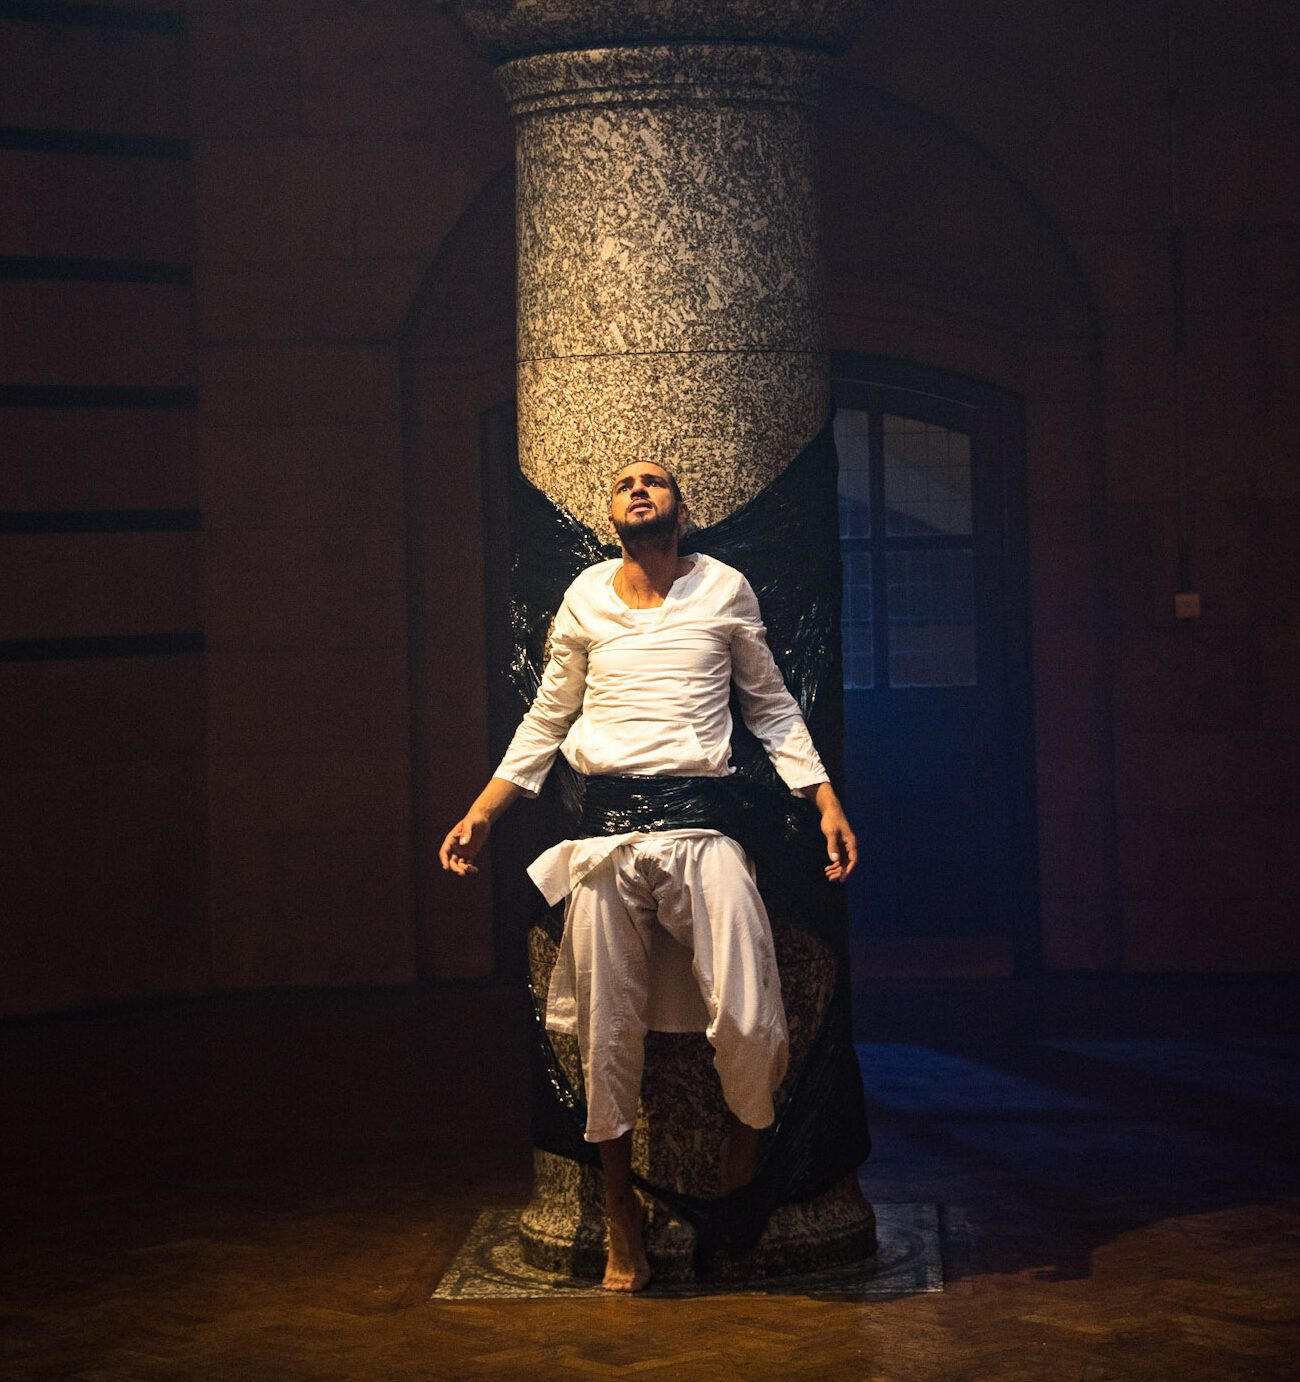 A man wearing white clothes is duct-taped to a large stone pillar